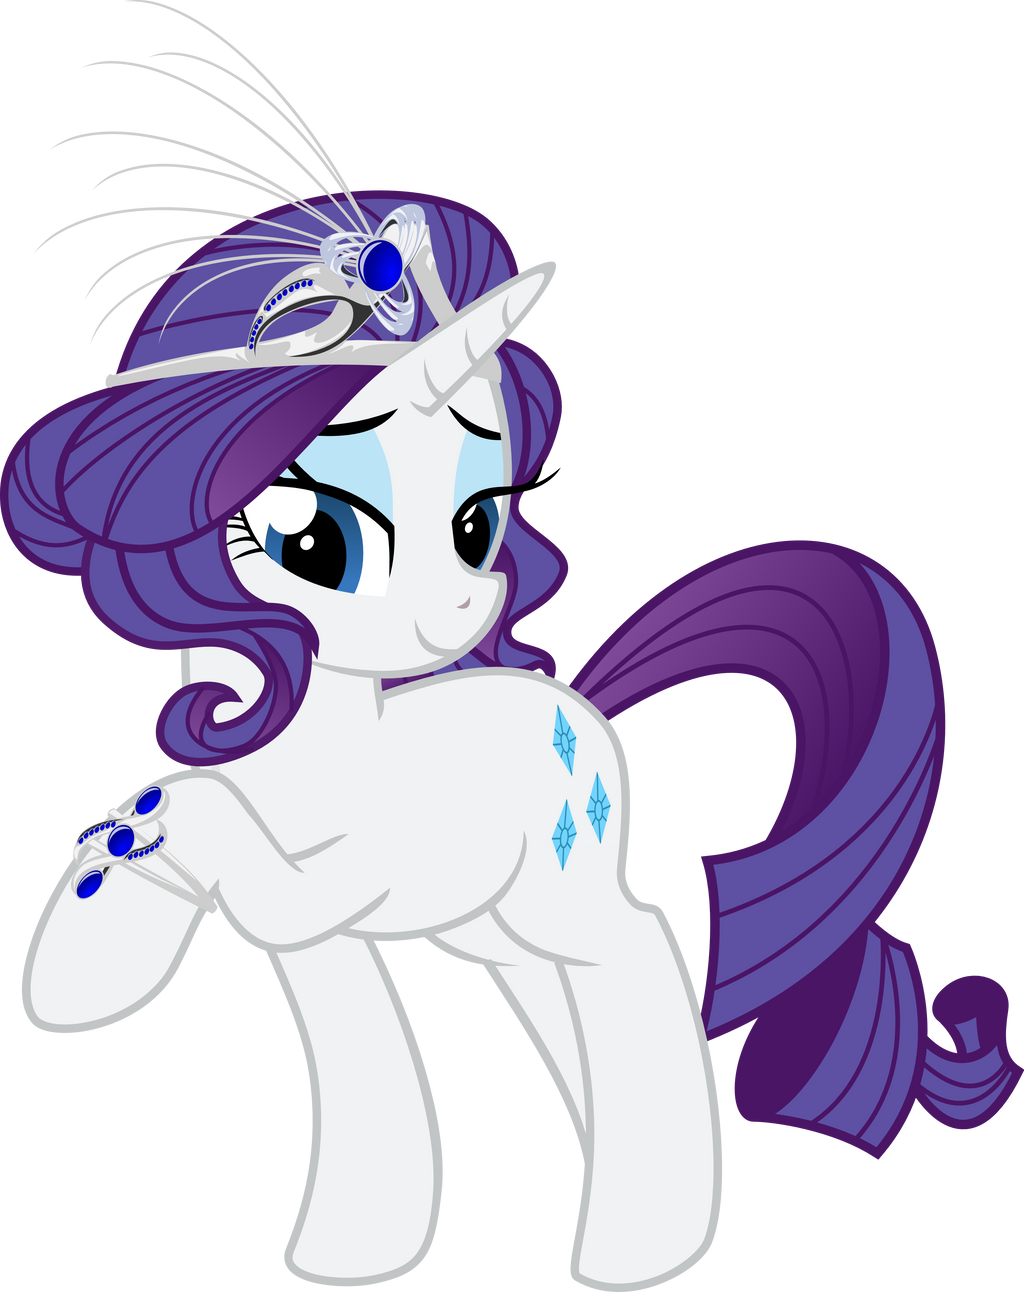 Rarity by UP1TER on DeviantArt